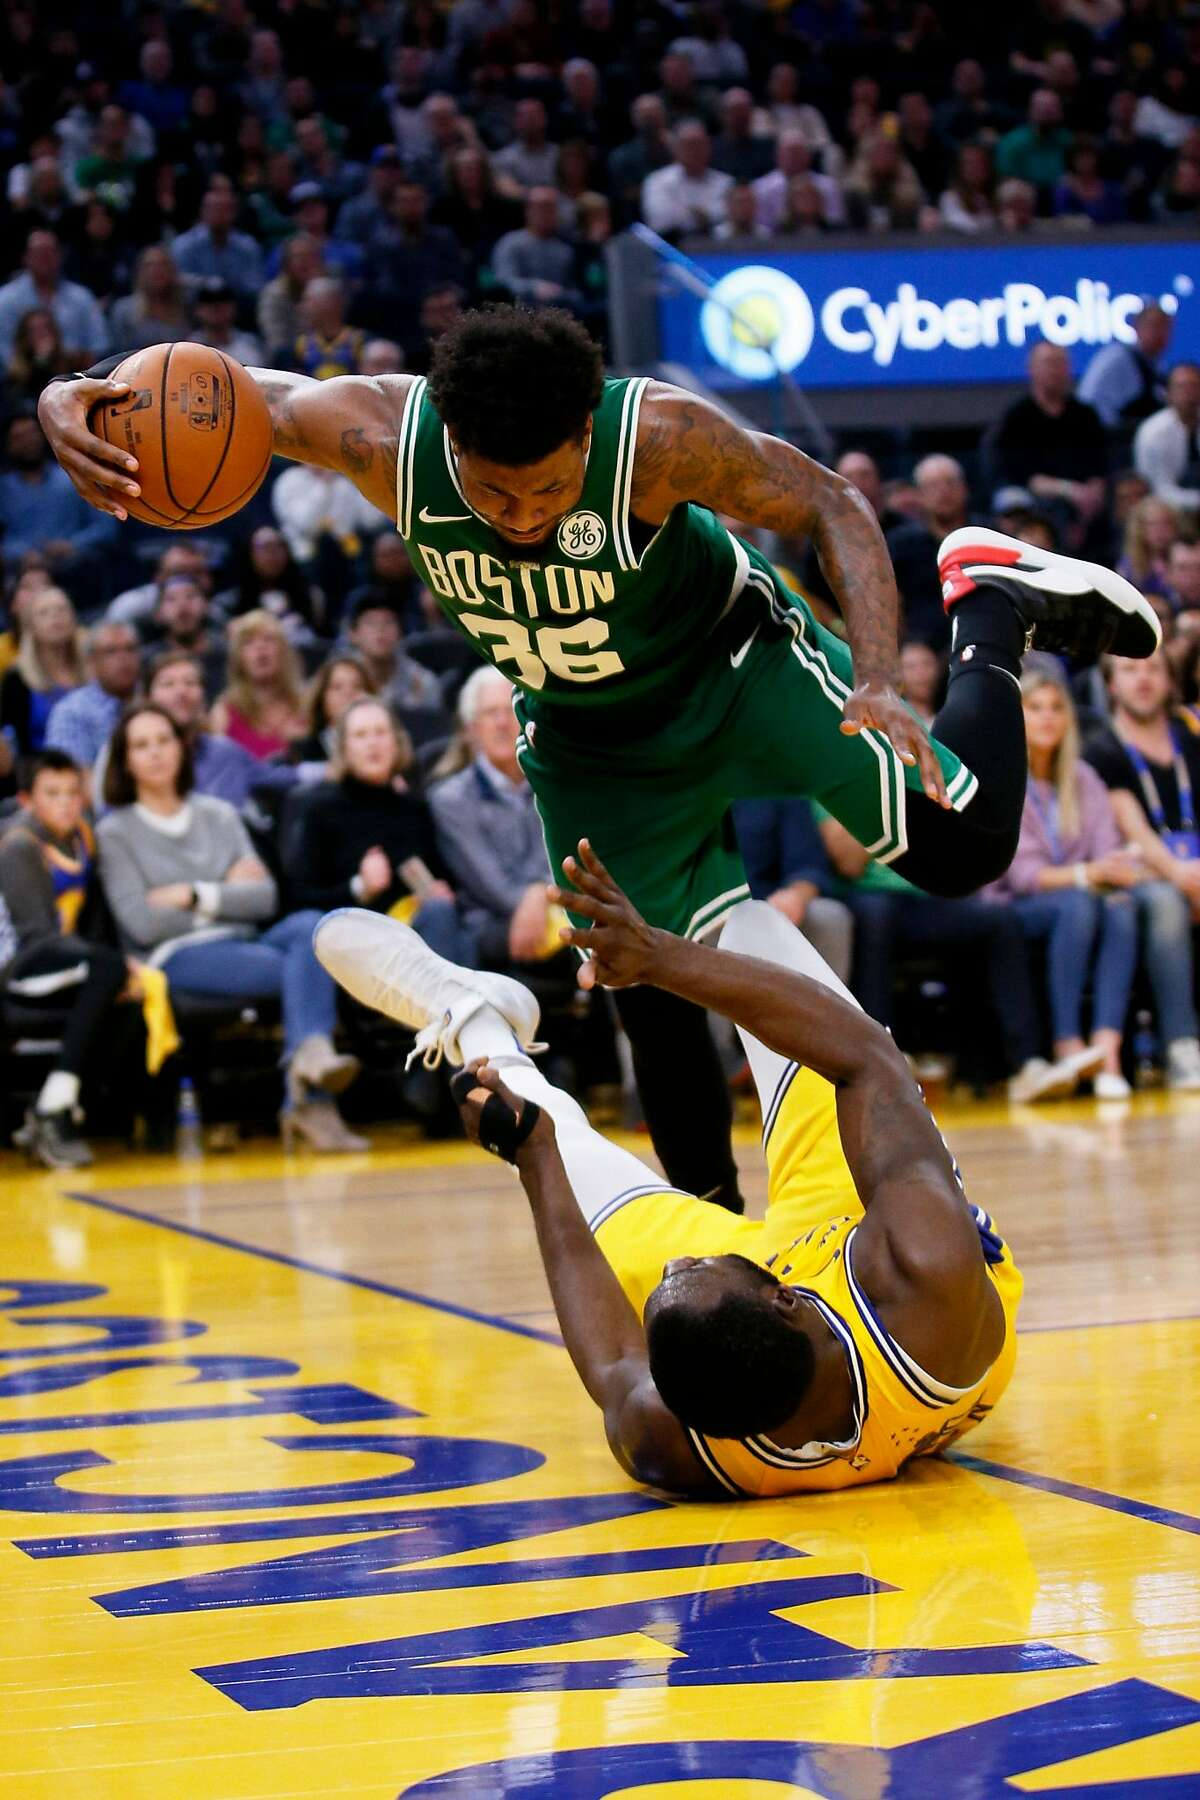 Boston Celtics guard Marcus Smart (36) is called for charging against Golden State Warriors forward Draymond Green (23) in the second half of an NBA game at Chase Center on Friday, Nov. 15, 2019, in San Francisco, Calif.